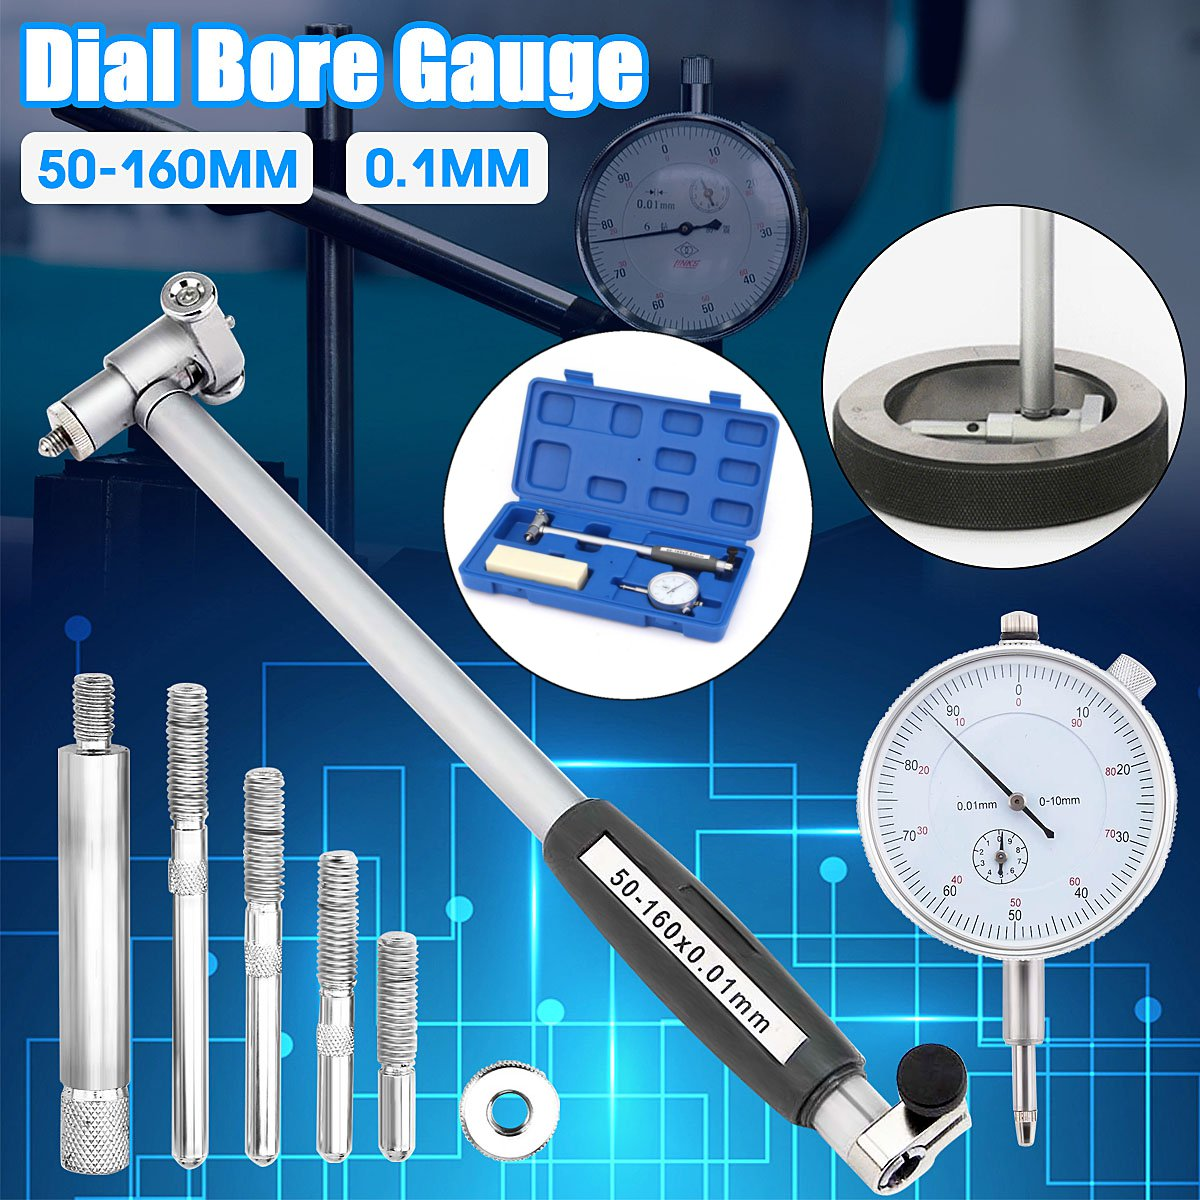 NEW Dial Bore Gauge 50-160MM 0.01MM Bridge Cylinder Internal Bore Measuring Gage Dial Indicators Tools Dropshipping 2019NEW Dial Bore Gauge 50-160MM 0.01MM Bridge Cylinder Internal Bore Measuring Gage Dial Indicators Tools Dropshipping 2019